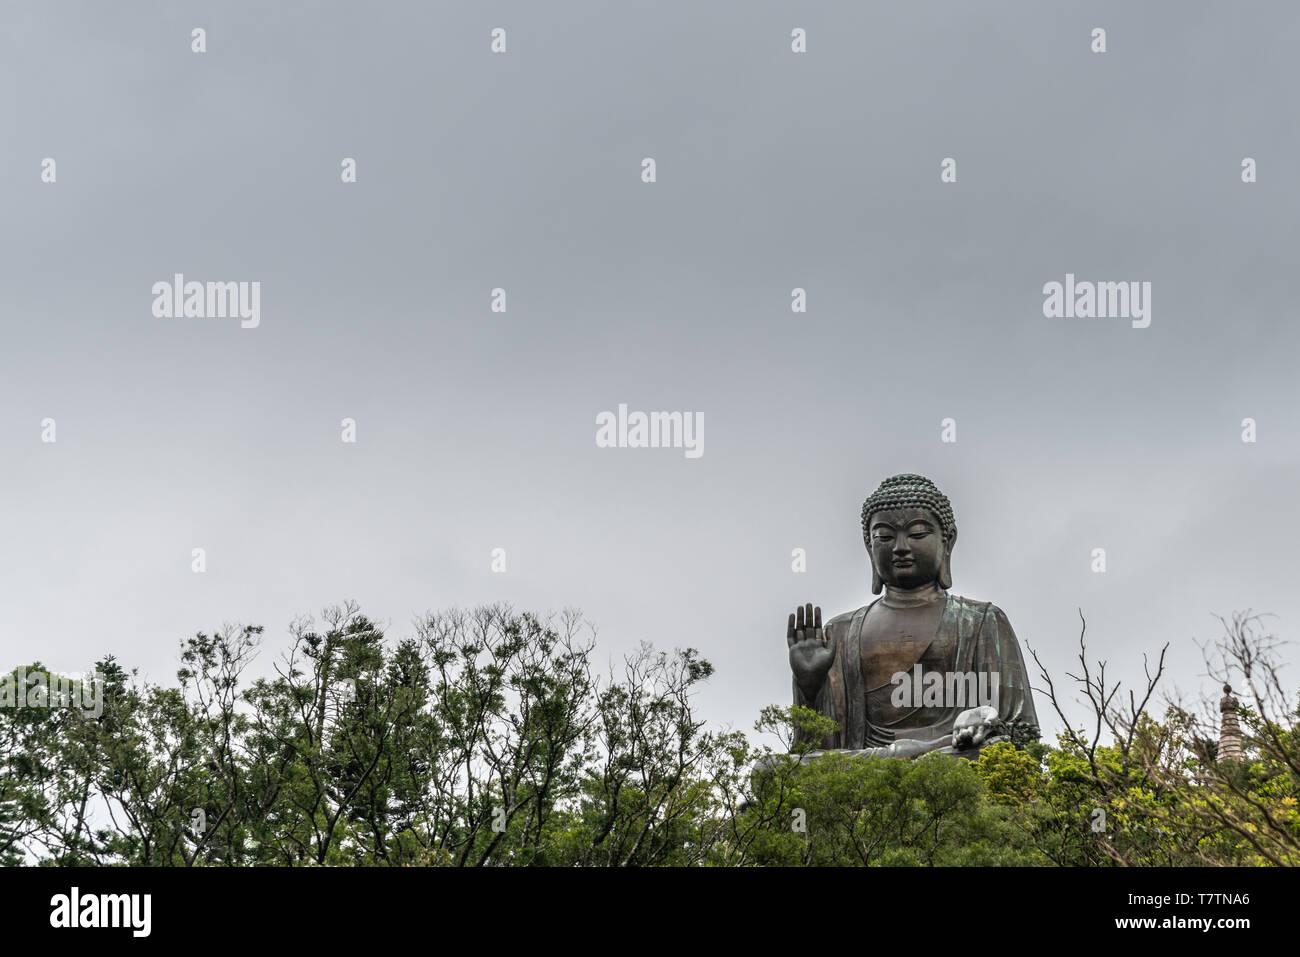 Hong Kong, China - March 7, 2019: Lantau Island. Frontal view, Tian Tan Buddha peeps over trees, statue from down under farther away under rain promis - Stock Image